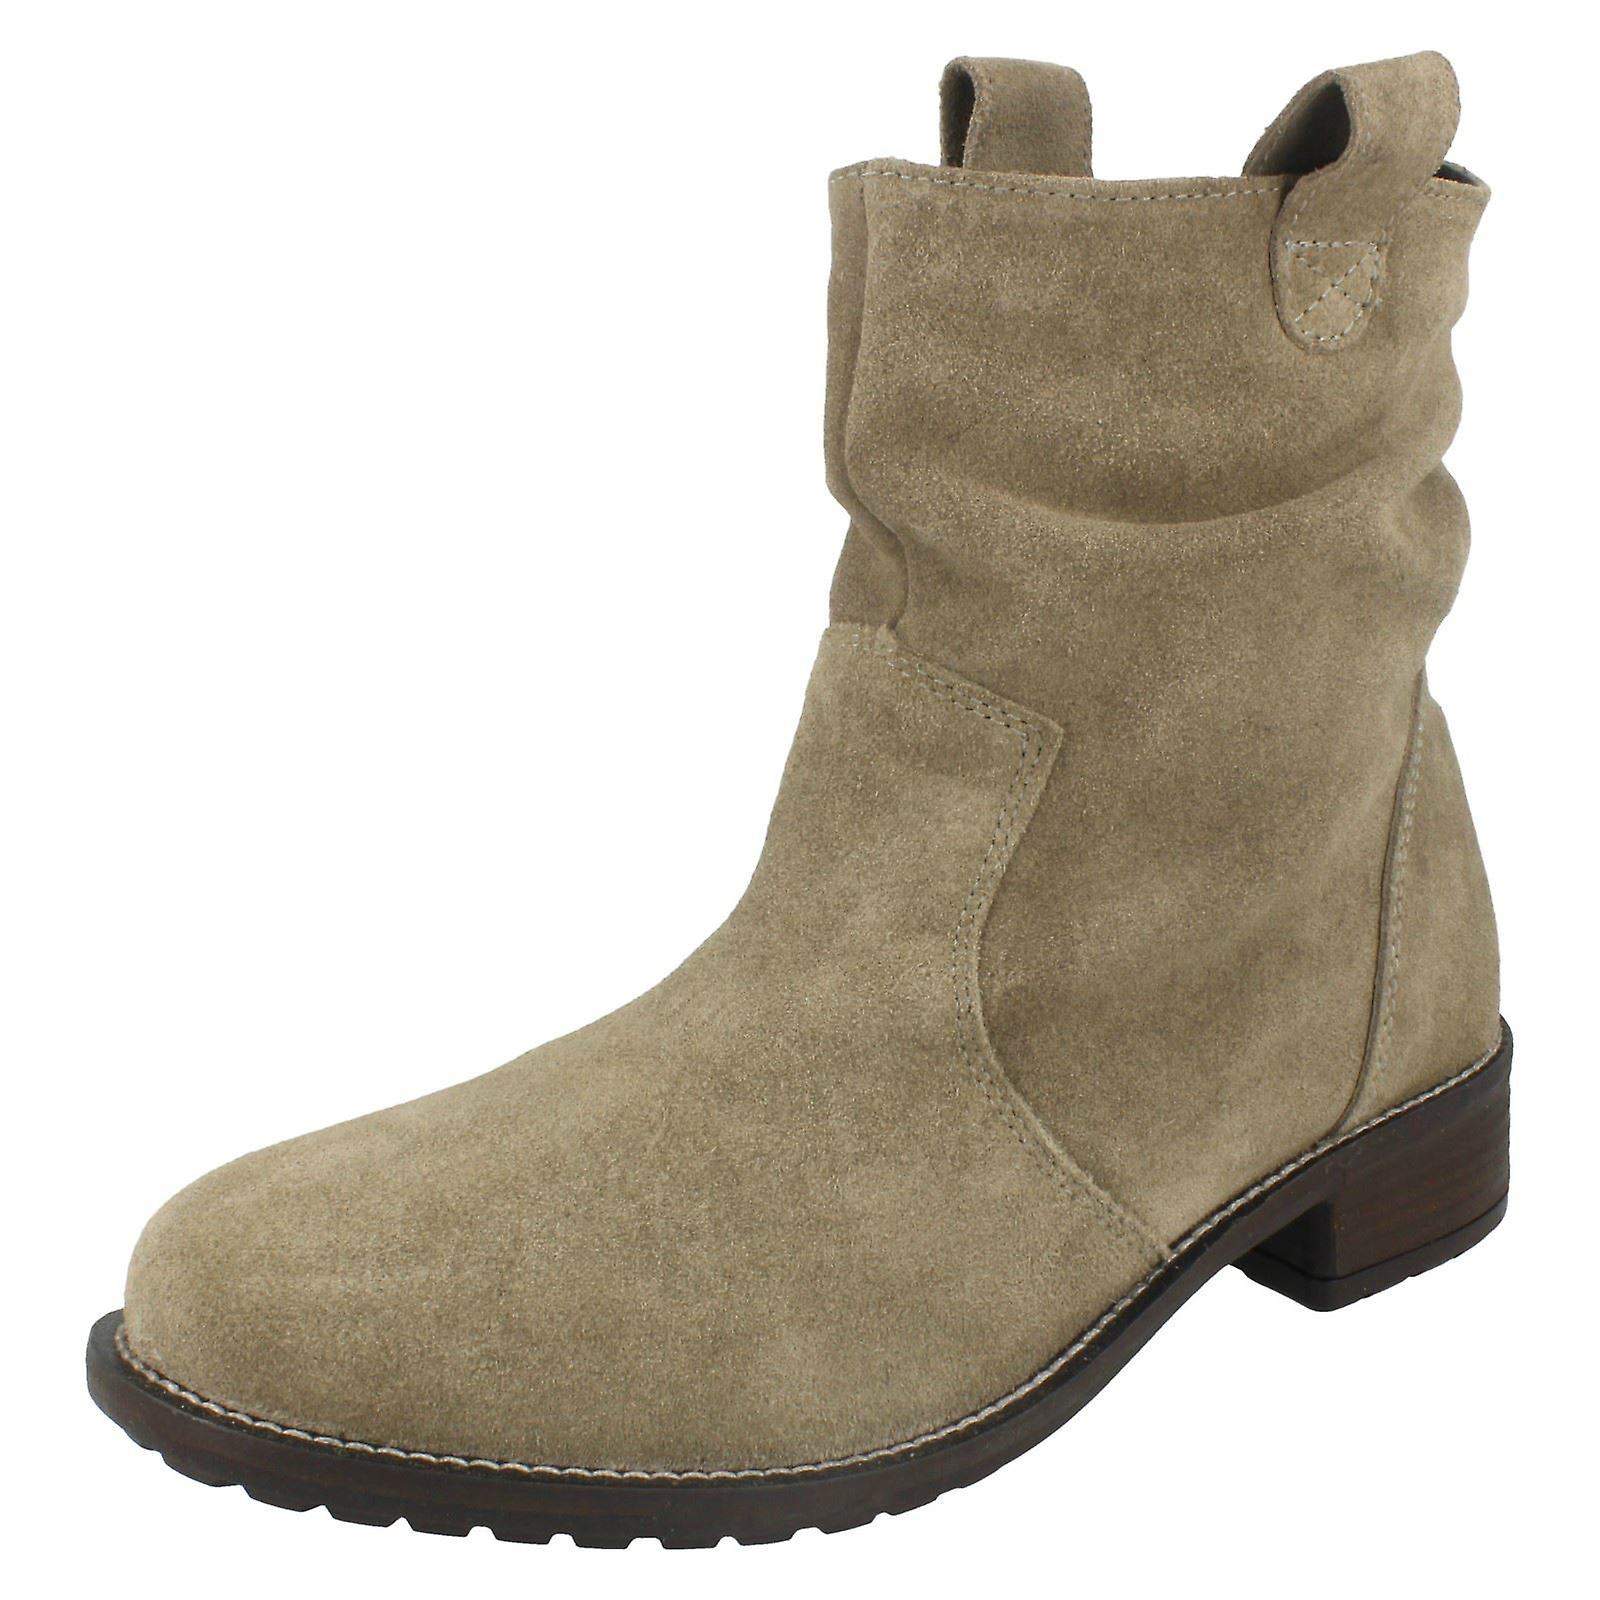 Ladies Leather Collection Mid Heel Slouch Boots F50659 bqVFx